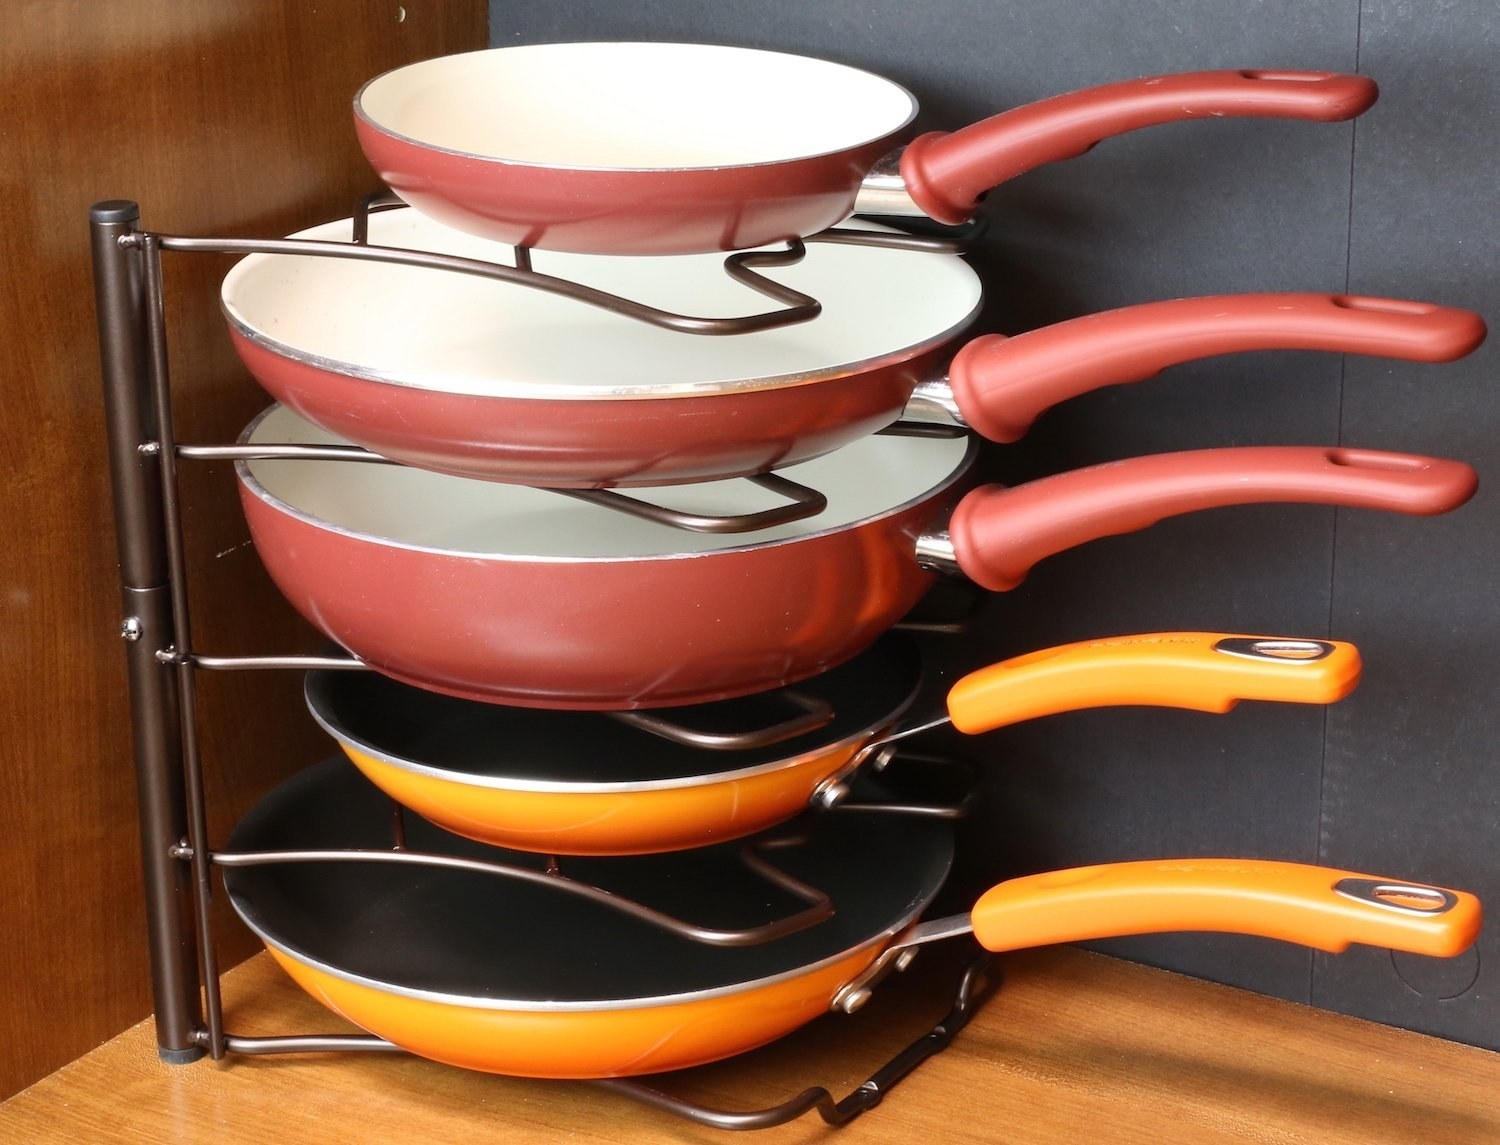 the five-tier rack filled with different sized pans